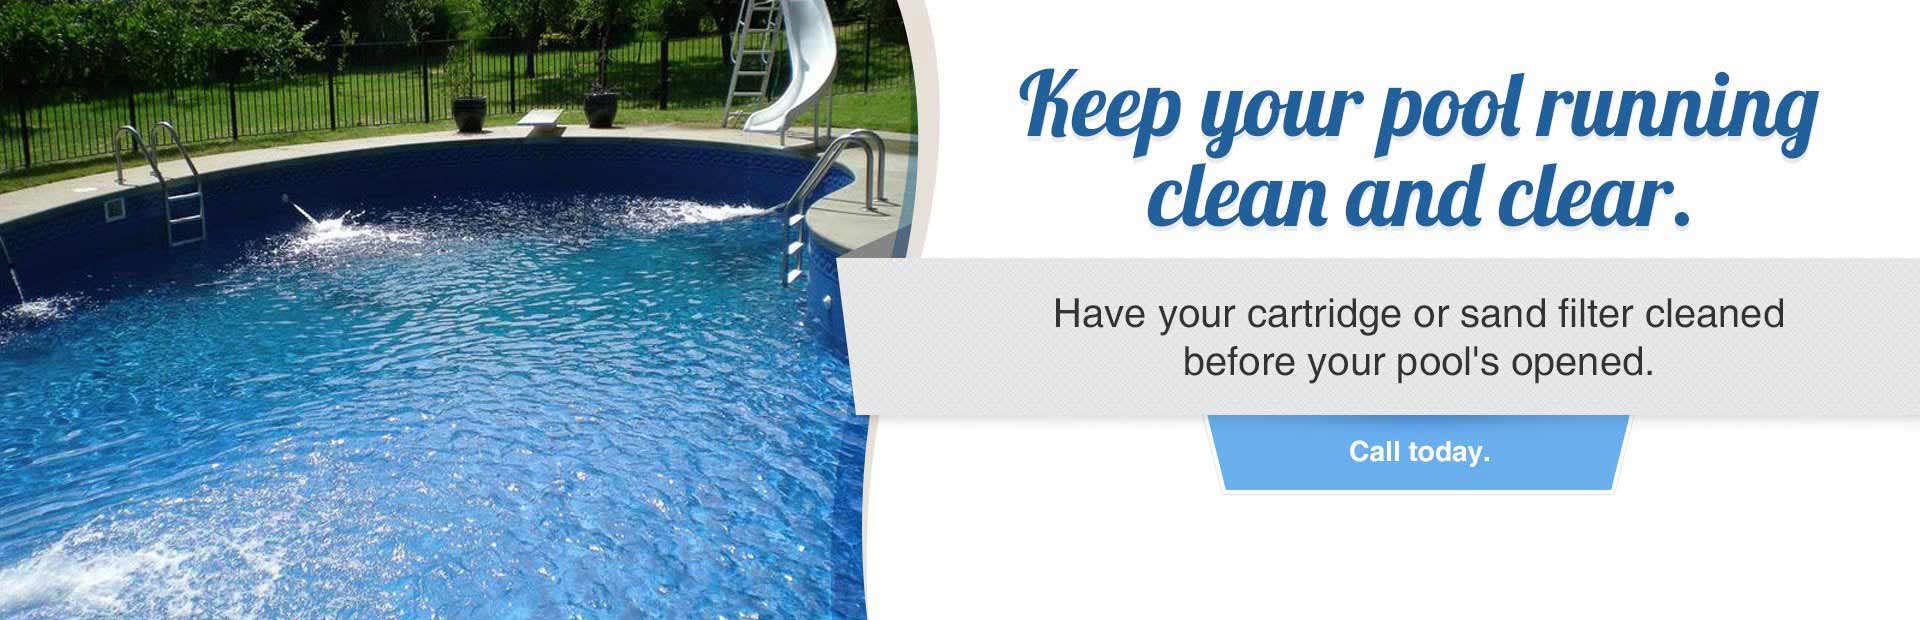 Have your cartridge or sand filter cleaned before your pool's opened. Call today.